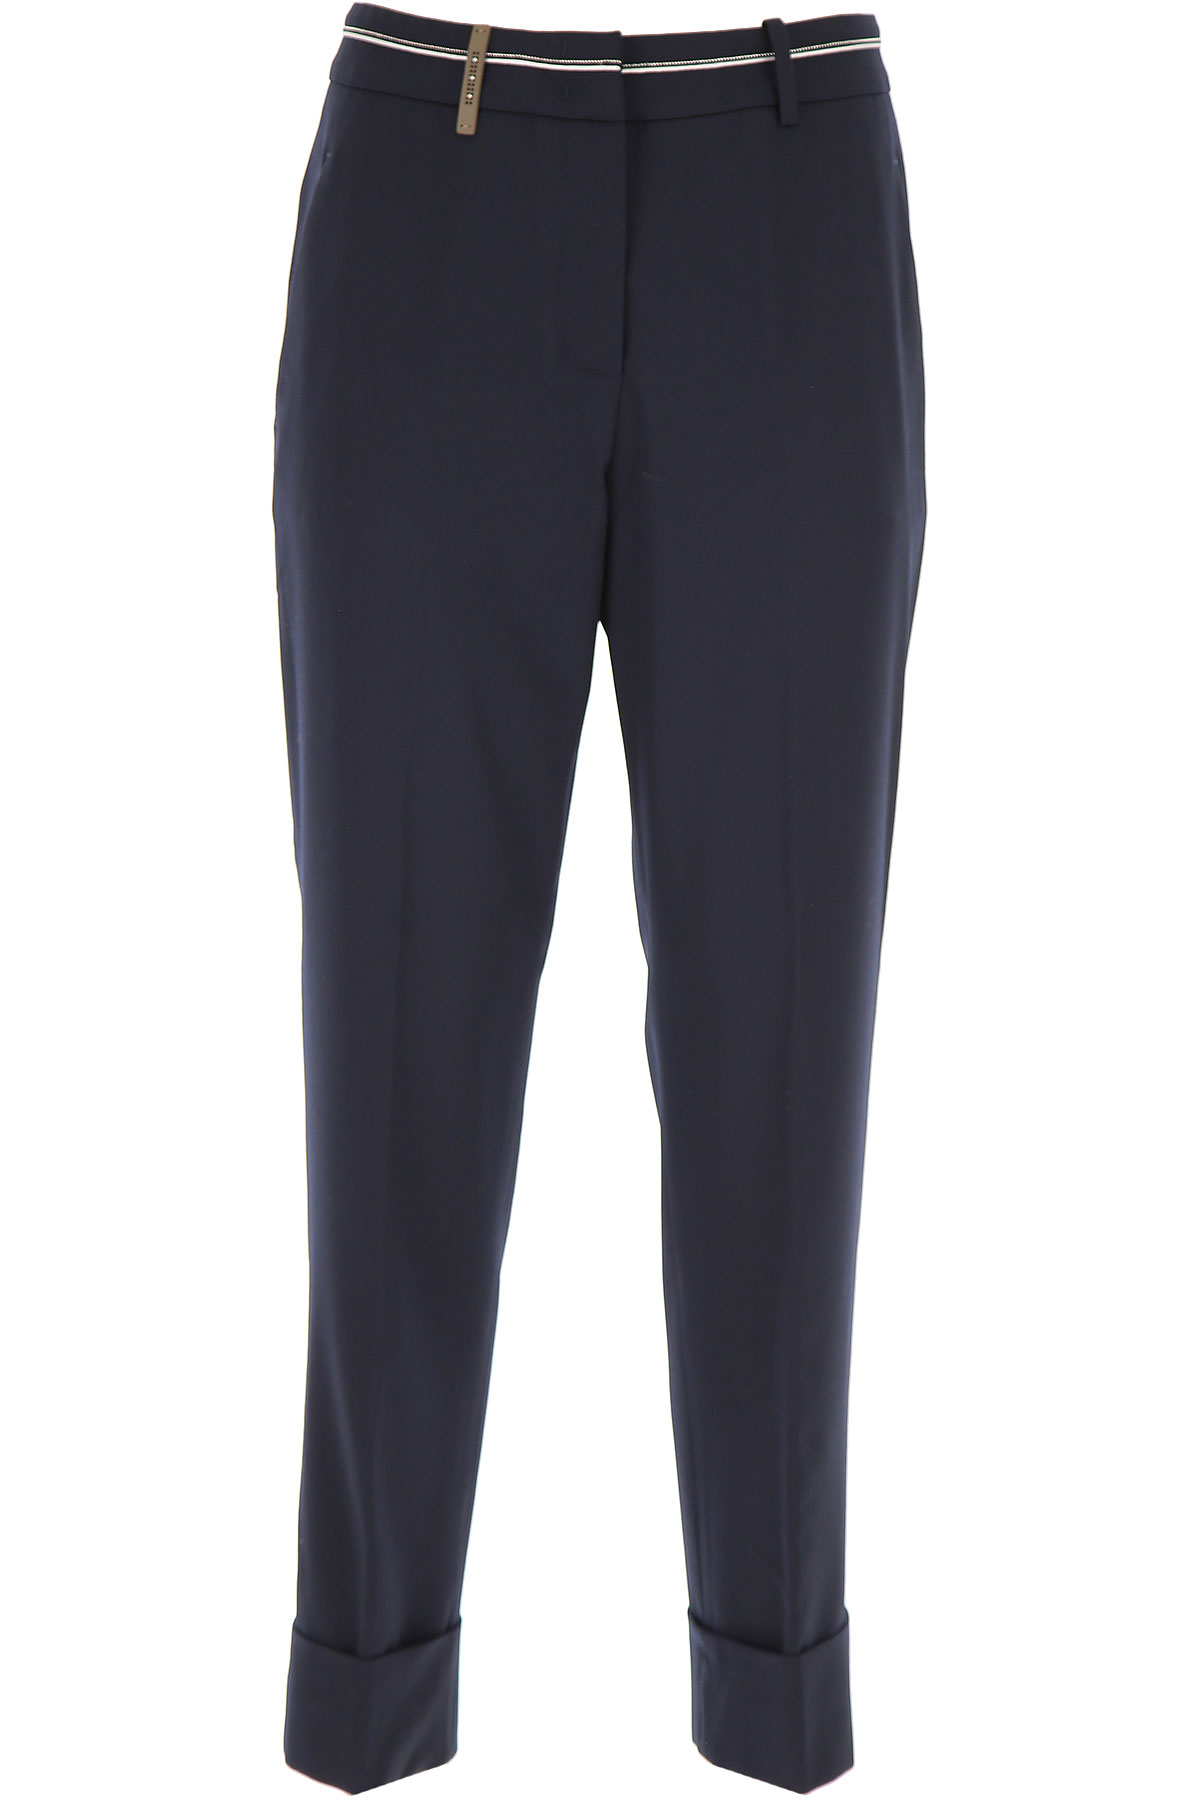 Peserico Pants for Women On Sale, Navy Blue, Wool, 2019, 26 32 34 4